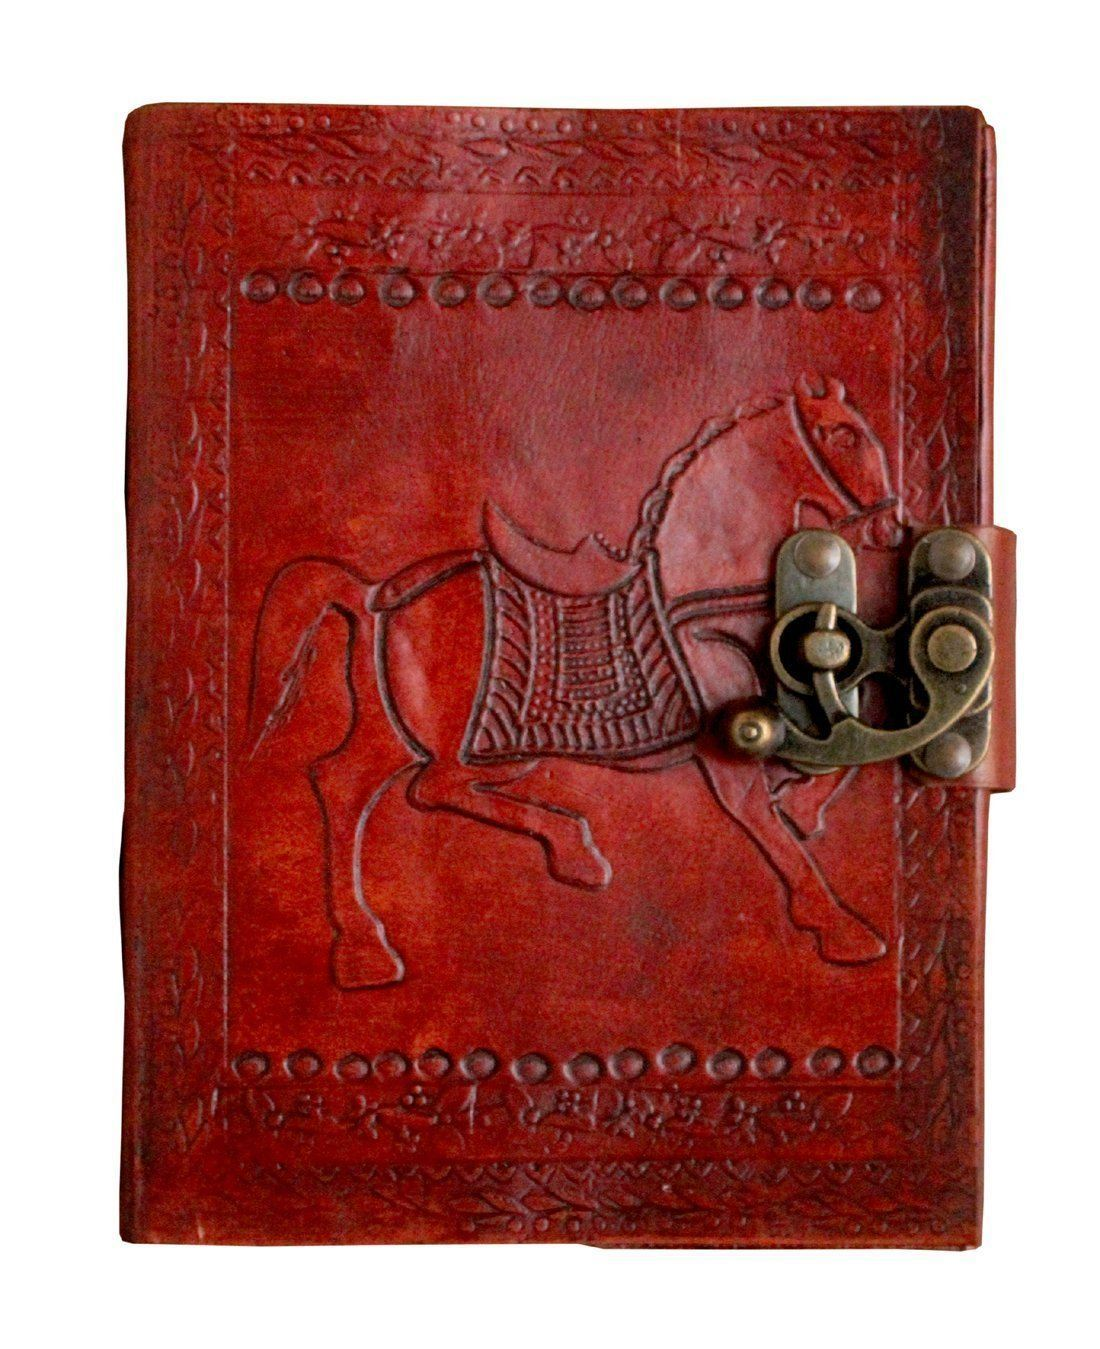 Diary - TUZECH Engraved Embossed Leather Diary Leather Journal Collection - More Than 12 Designs ( 7 Inches X 5 Inches)